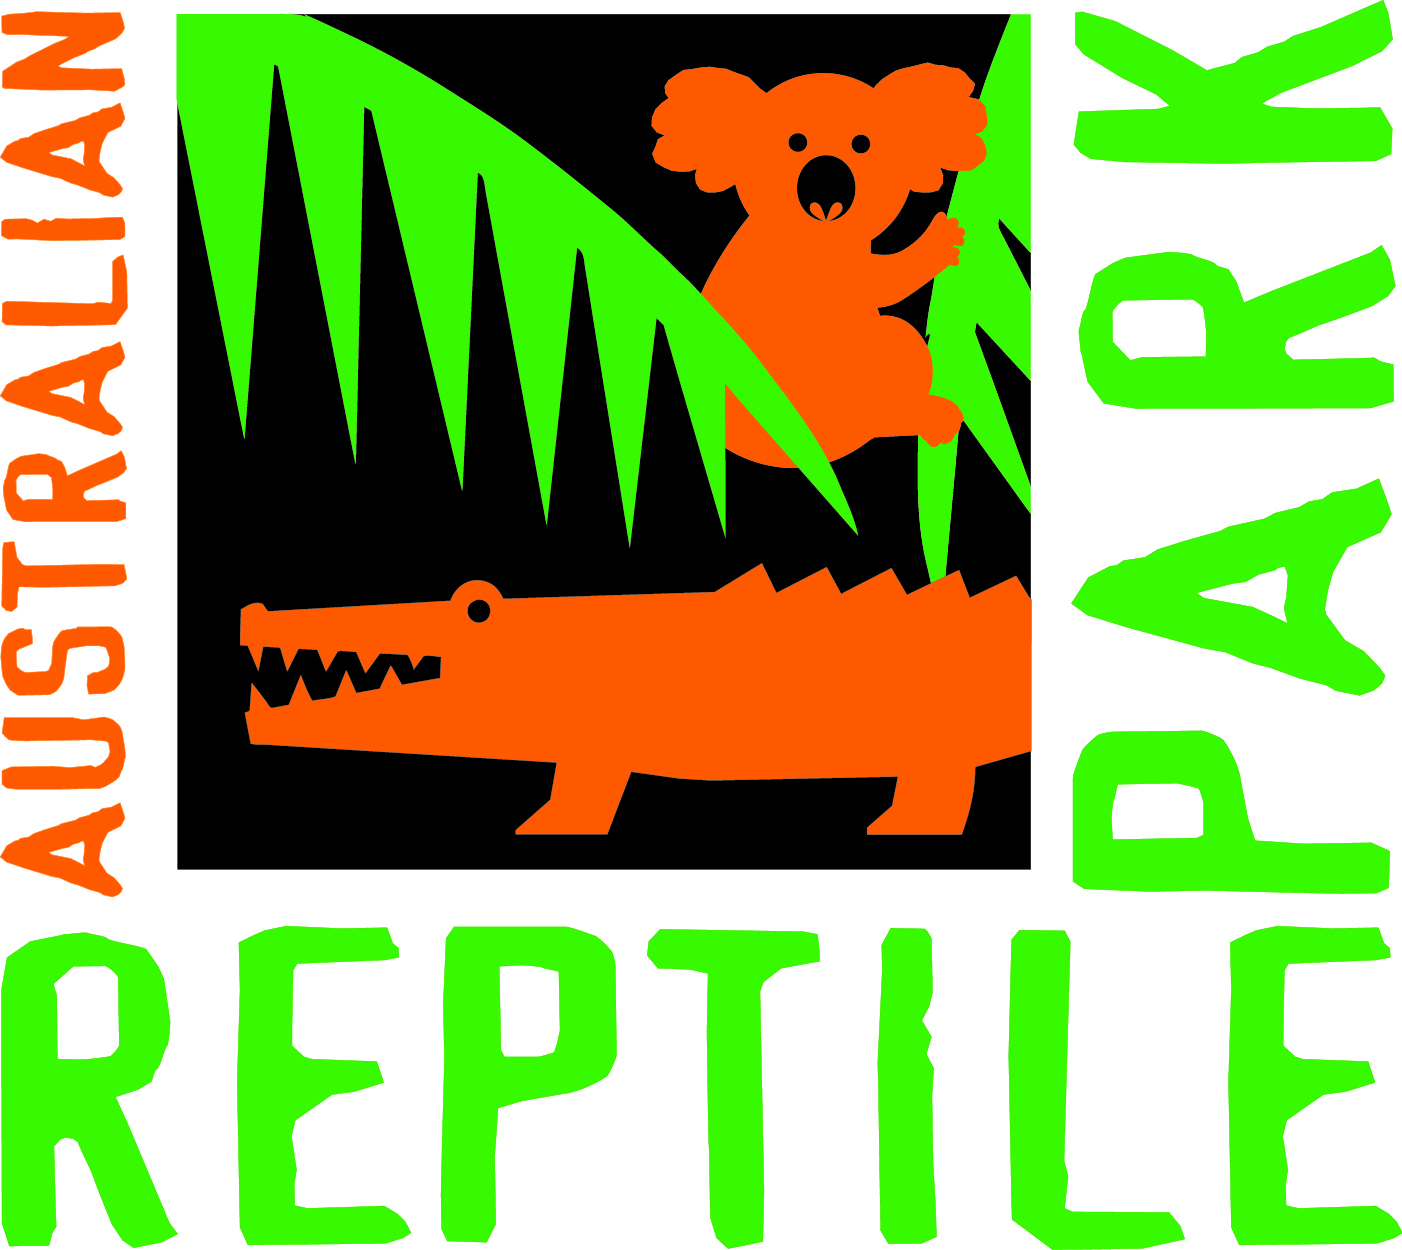 Australian Reptile Park - Stayed